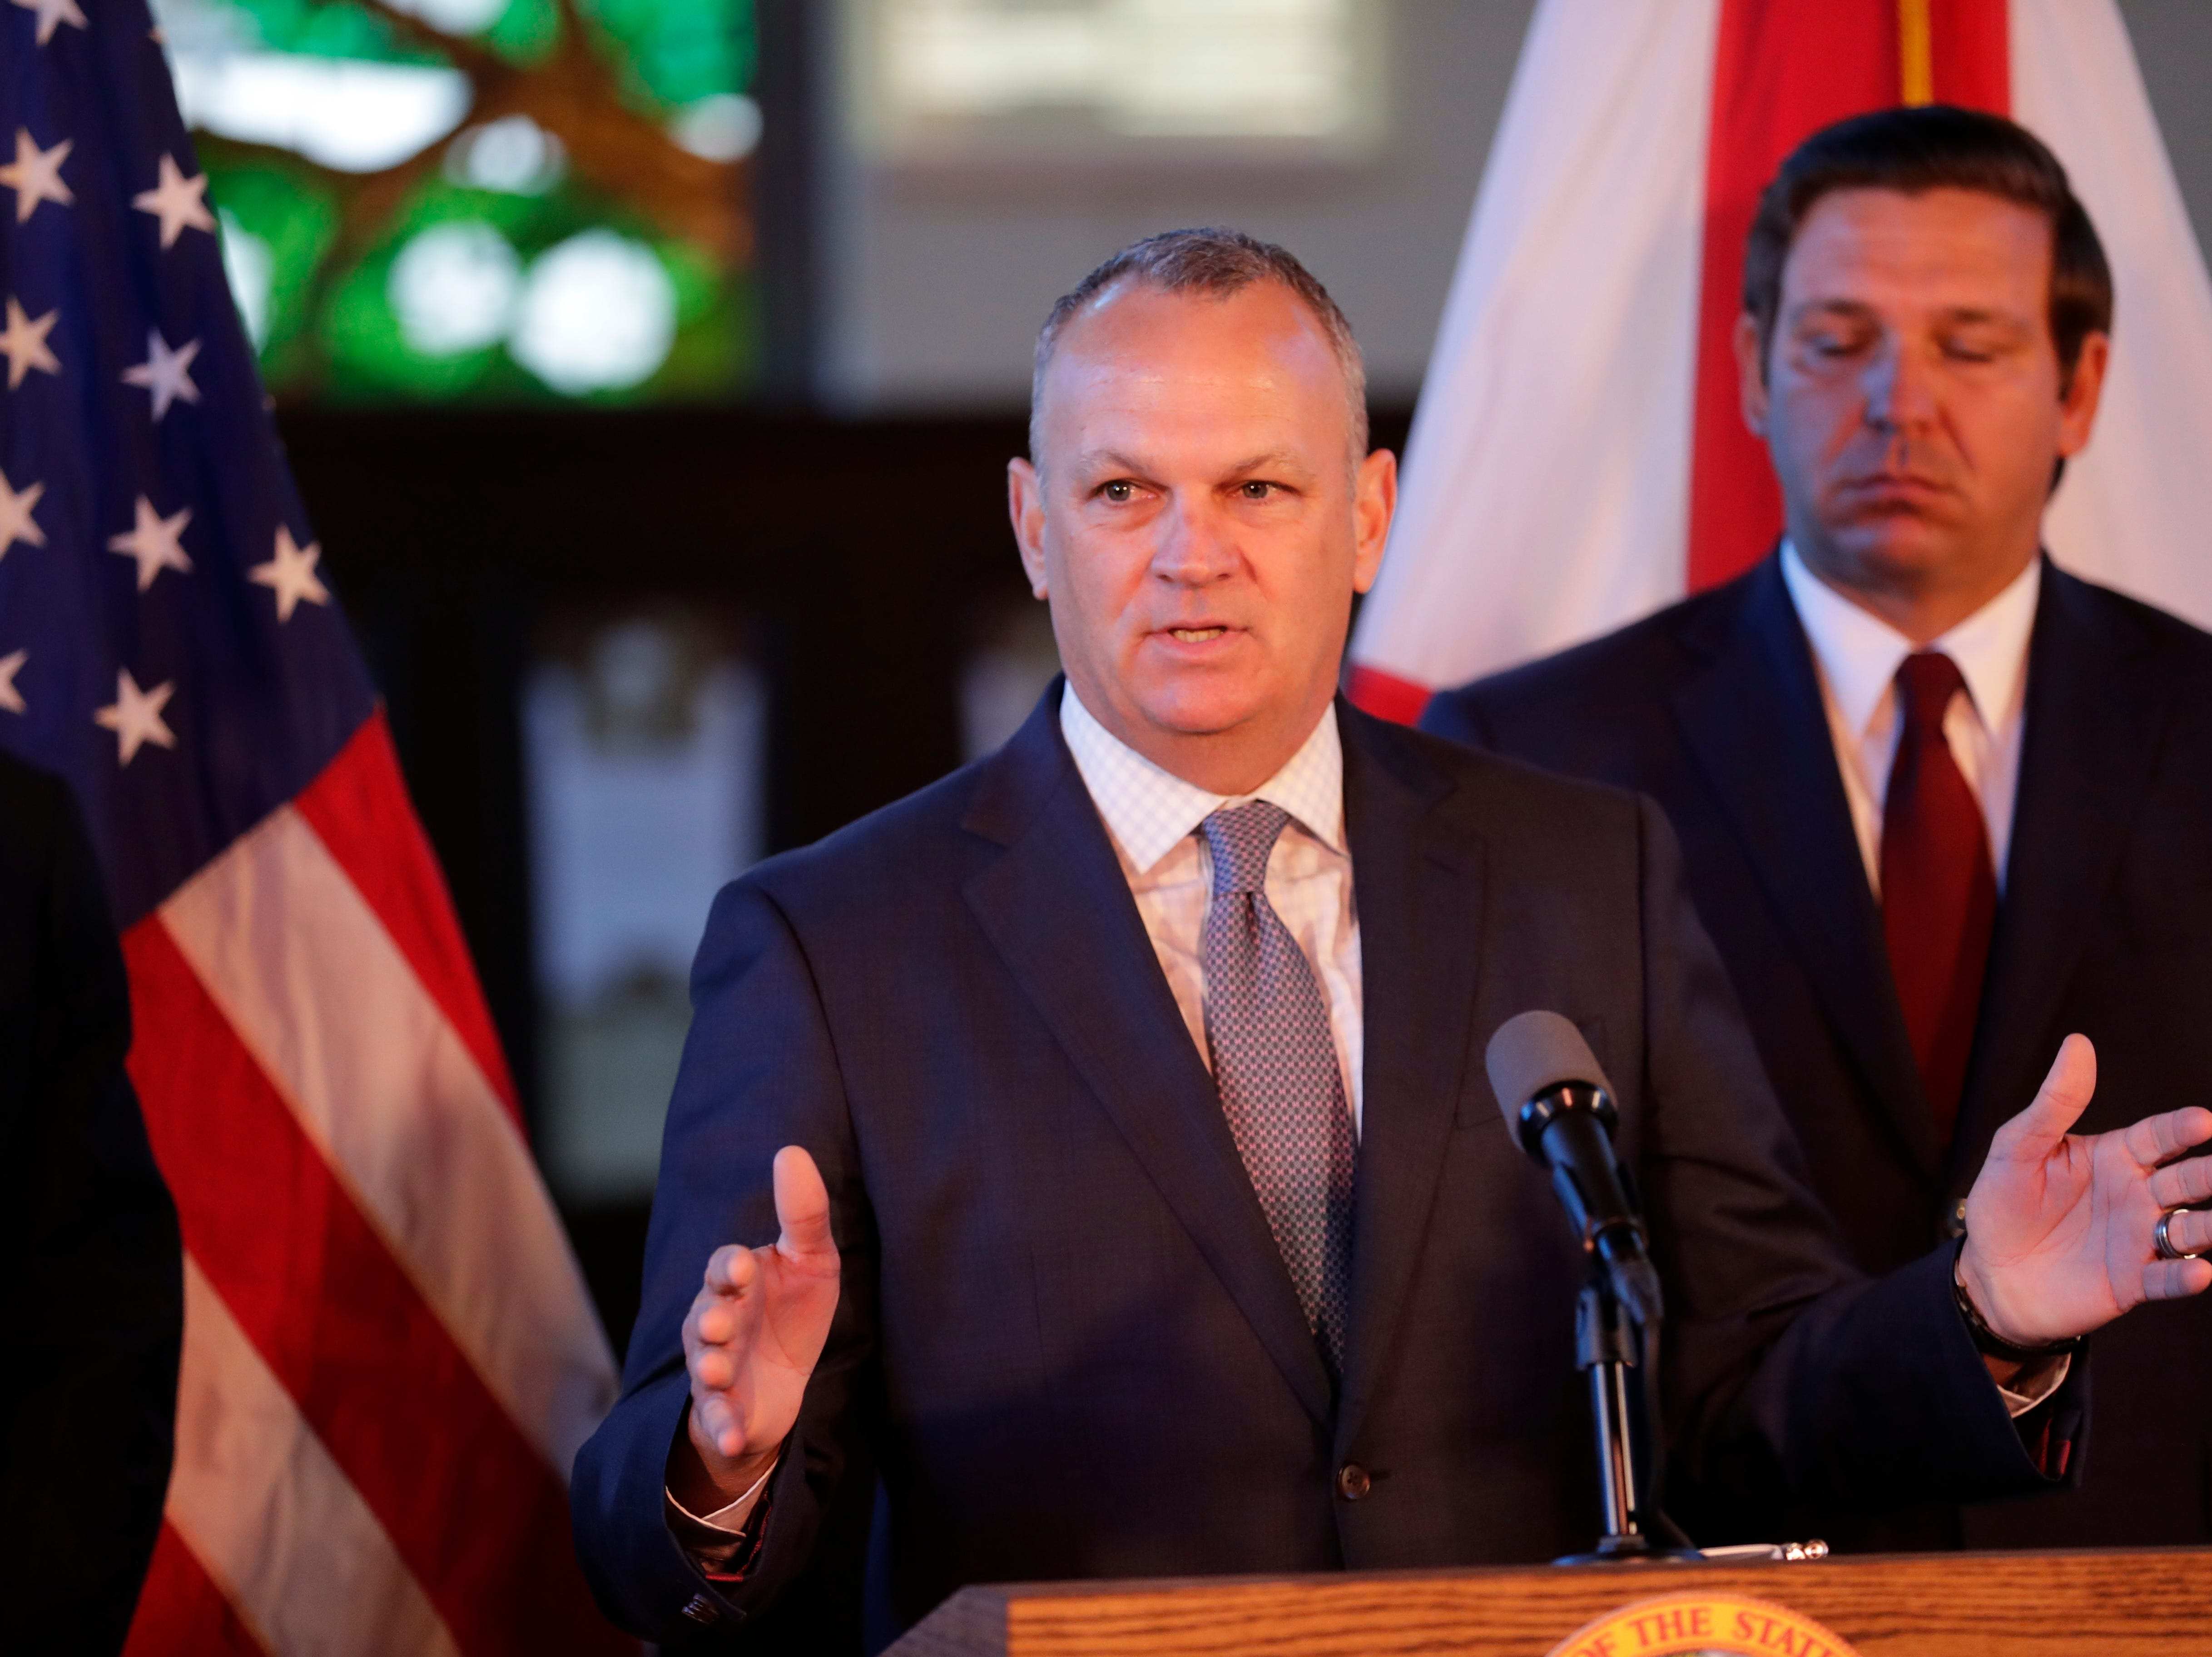 Florida Education Commissioner Richard Corcoran speaks at a news conference where Gov. Ron DeSantis affirmed free speech rights on all higher education campuses in the state of Florida at Dodd Hall at Florida State University Monday, April 15, 2019.